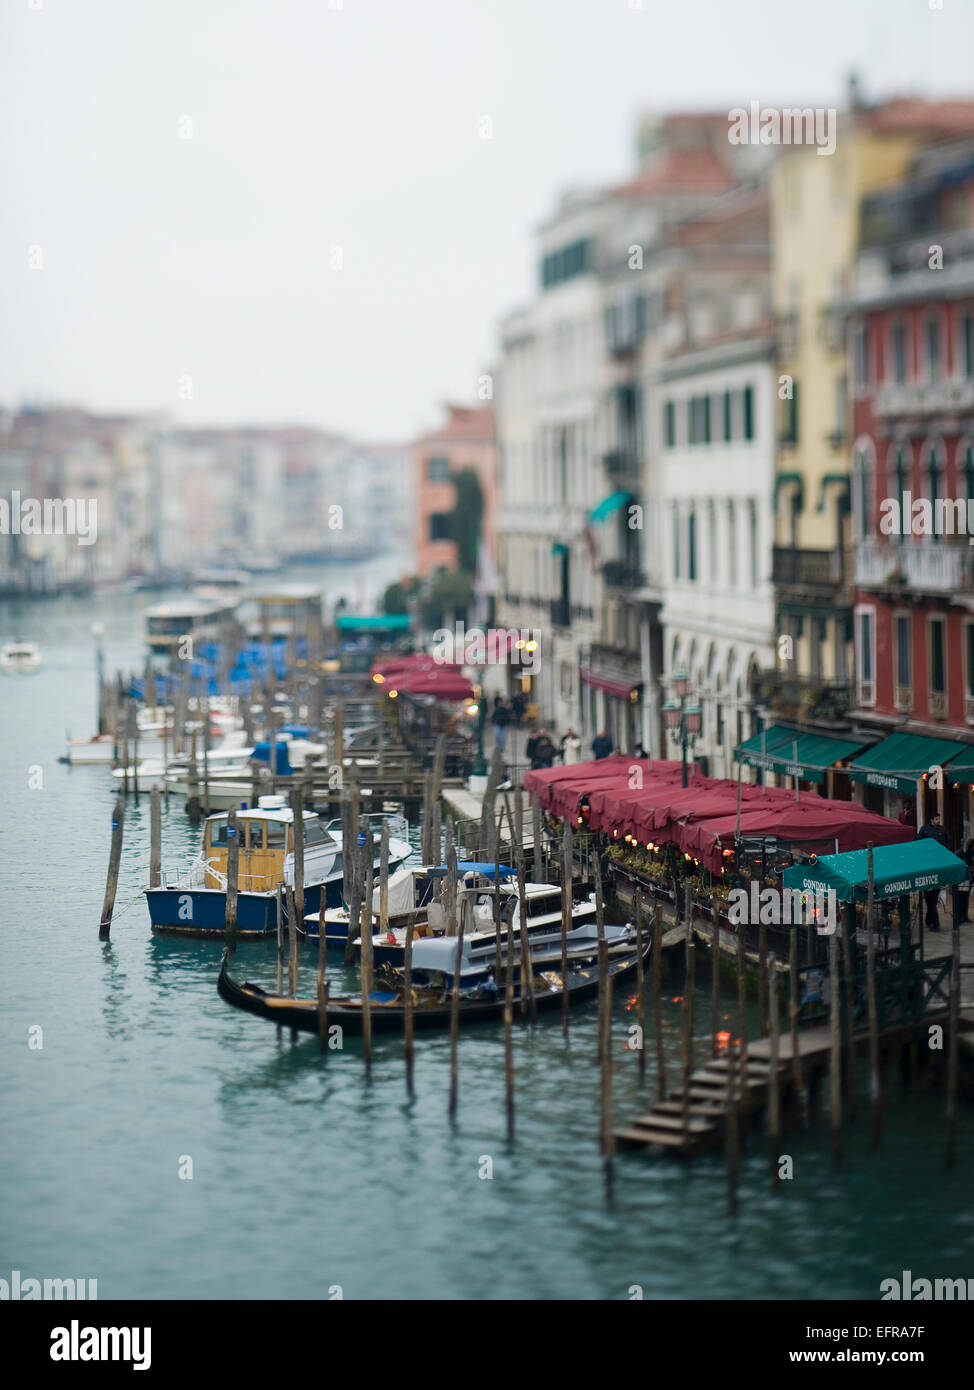 Wide canal in Venice, with boats and traditional gondolas moored along the waterfront, and restaurants and cafes. - Stock Image